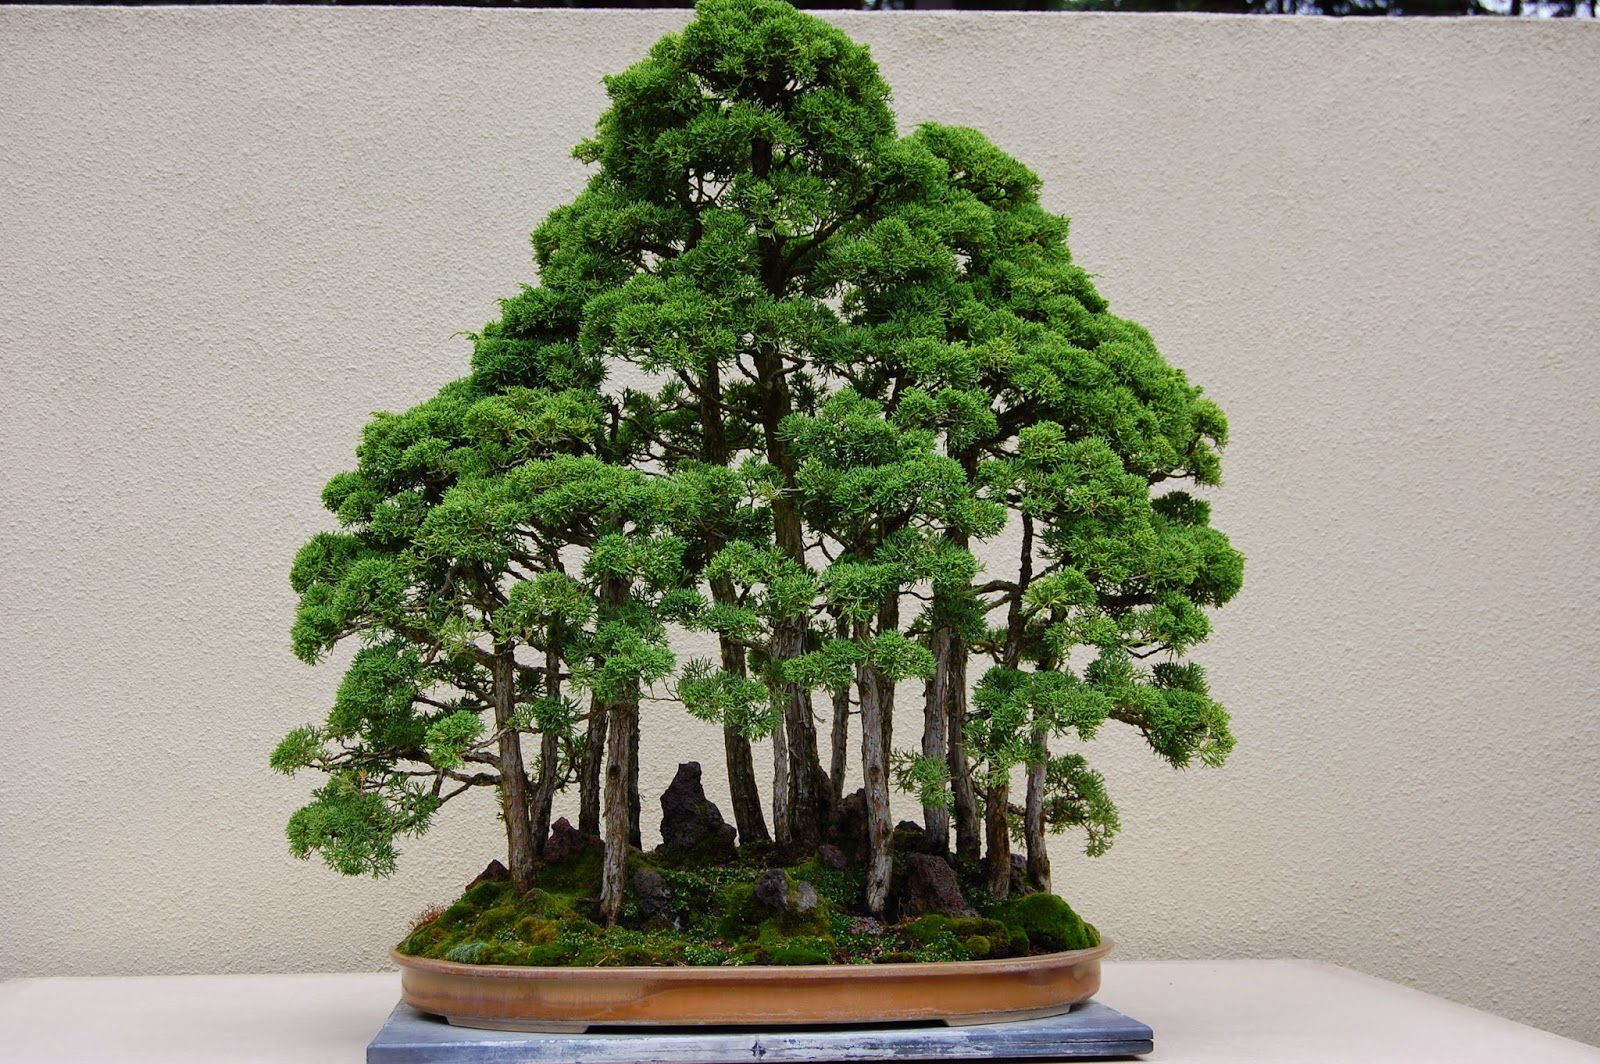 NORDIC NEBARI By Kenneth Olsen RAFT STYLE BONSAI IN THE MAKING